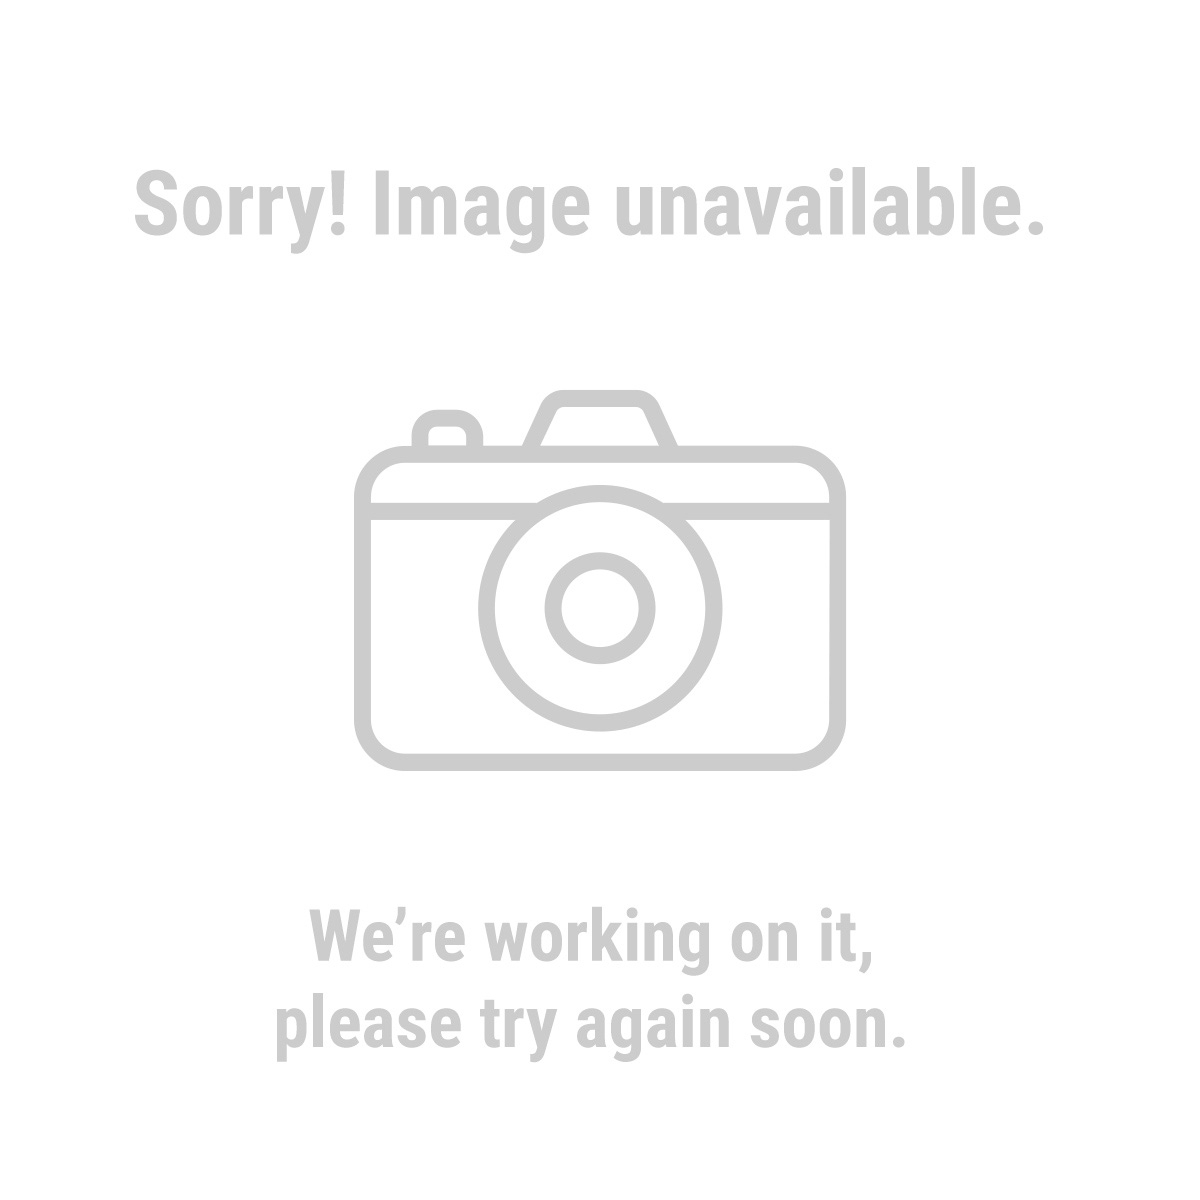 Haul-Master 61524 1 in. x 15 ft. Ratcheting Tie Downs 4 Pc